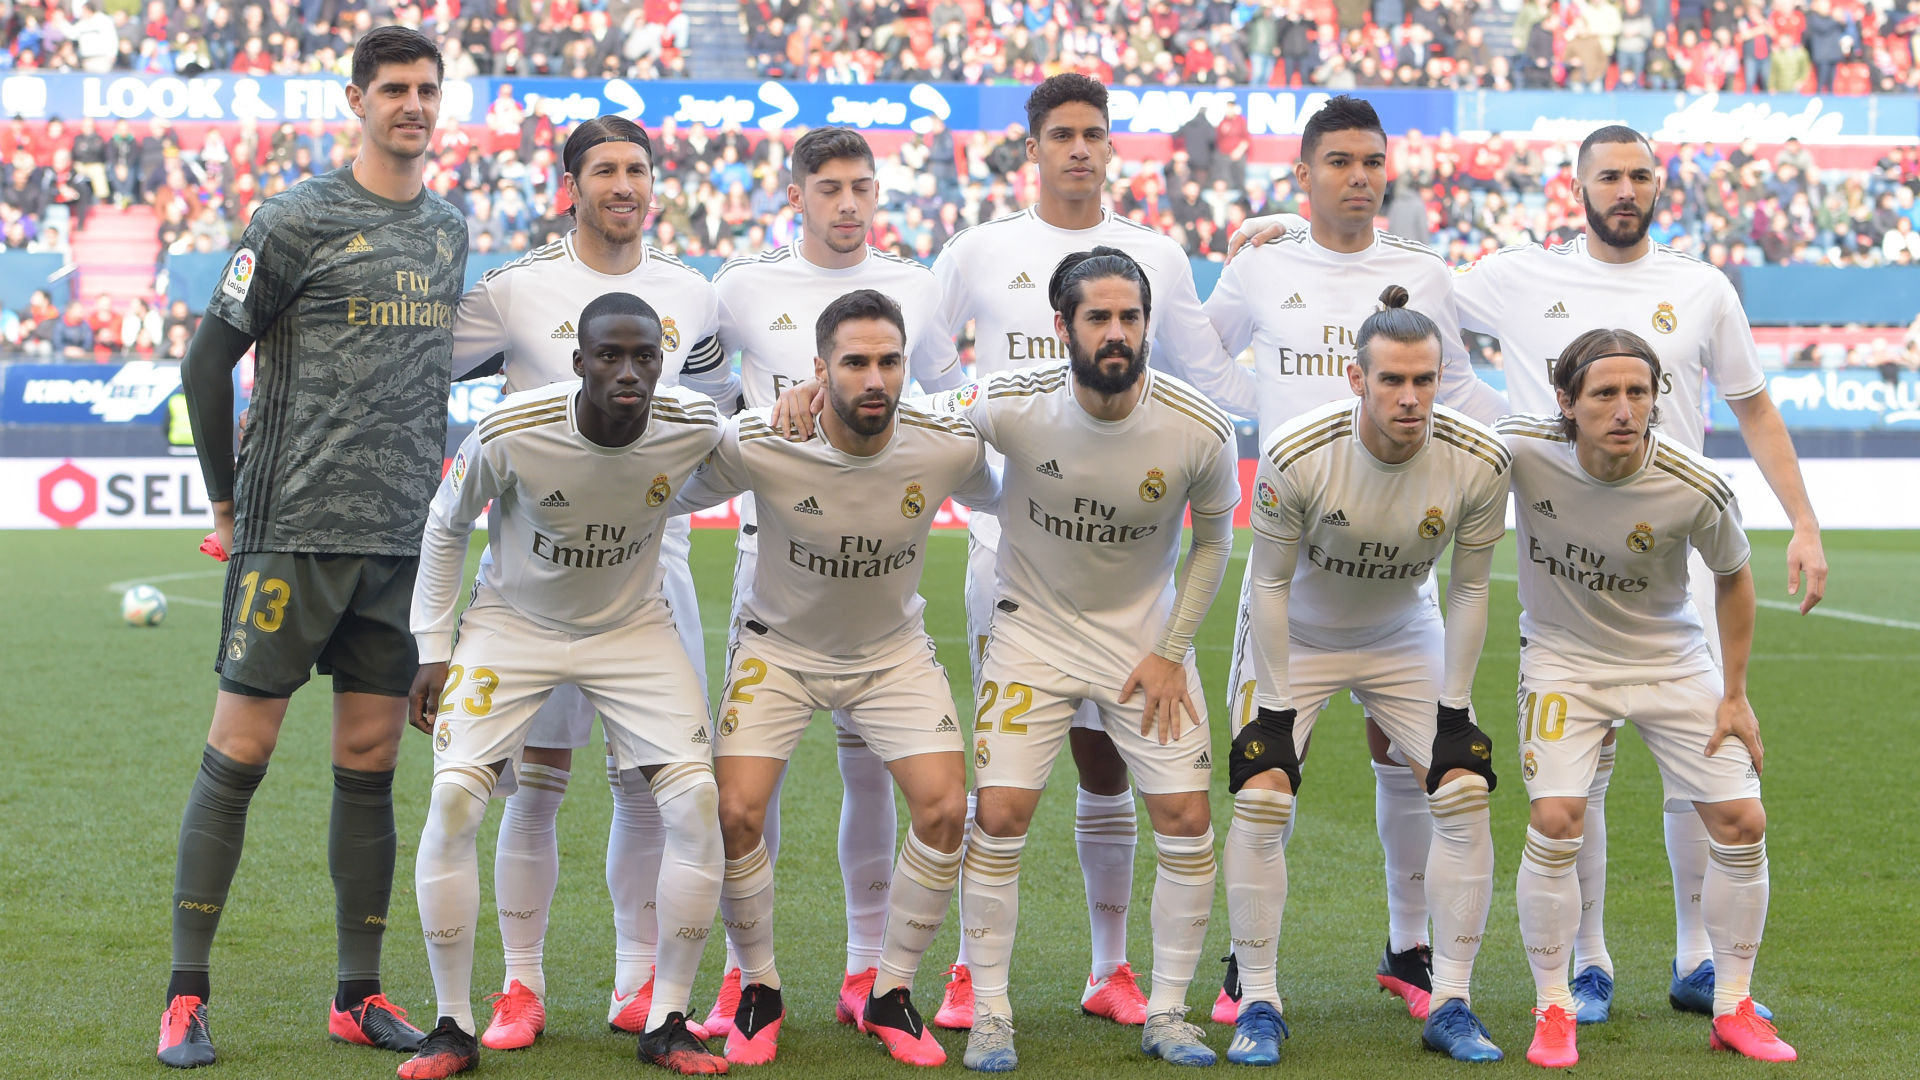 Le Real Madrid en quarantaine pendant 15 jours — Coronavirus